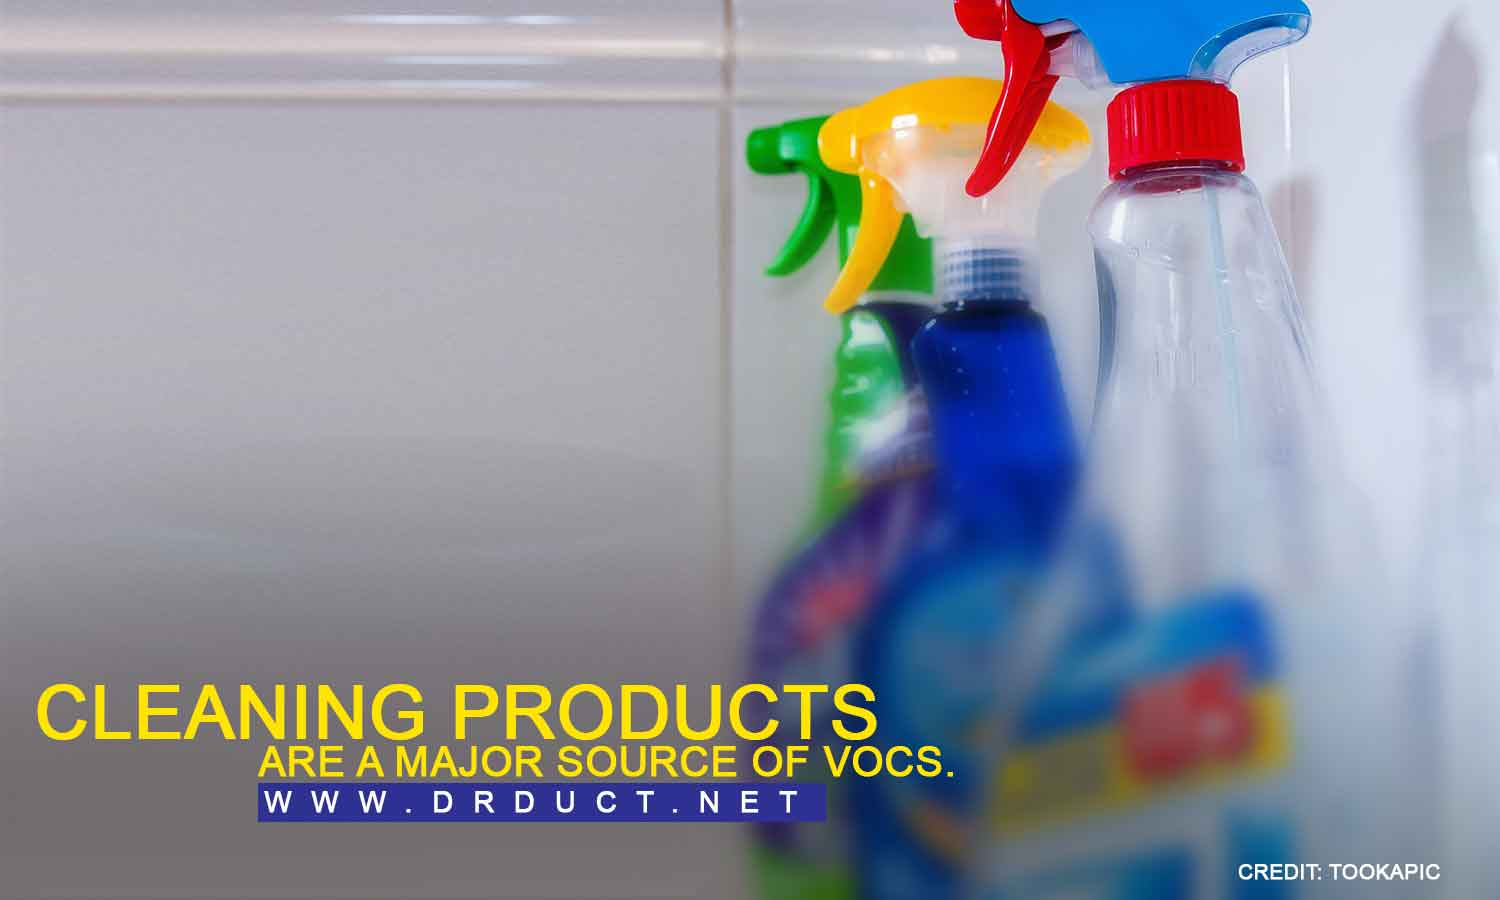 Cleaning products are a major source of VOCs